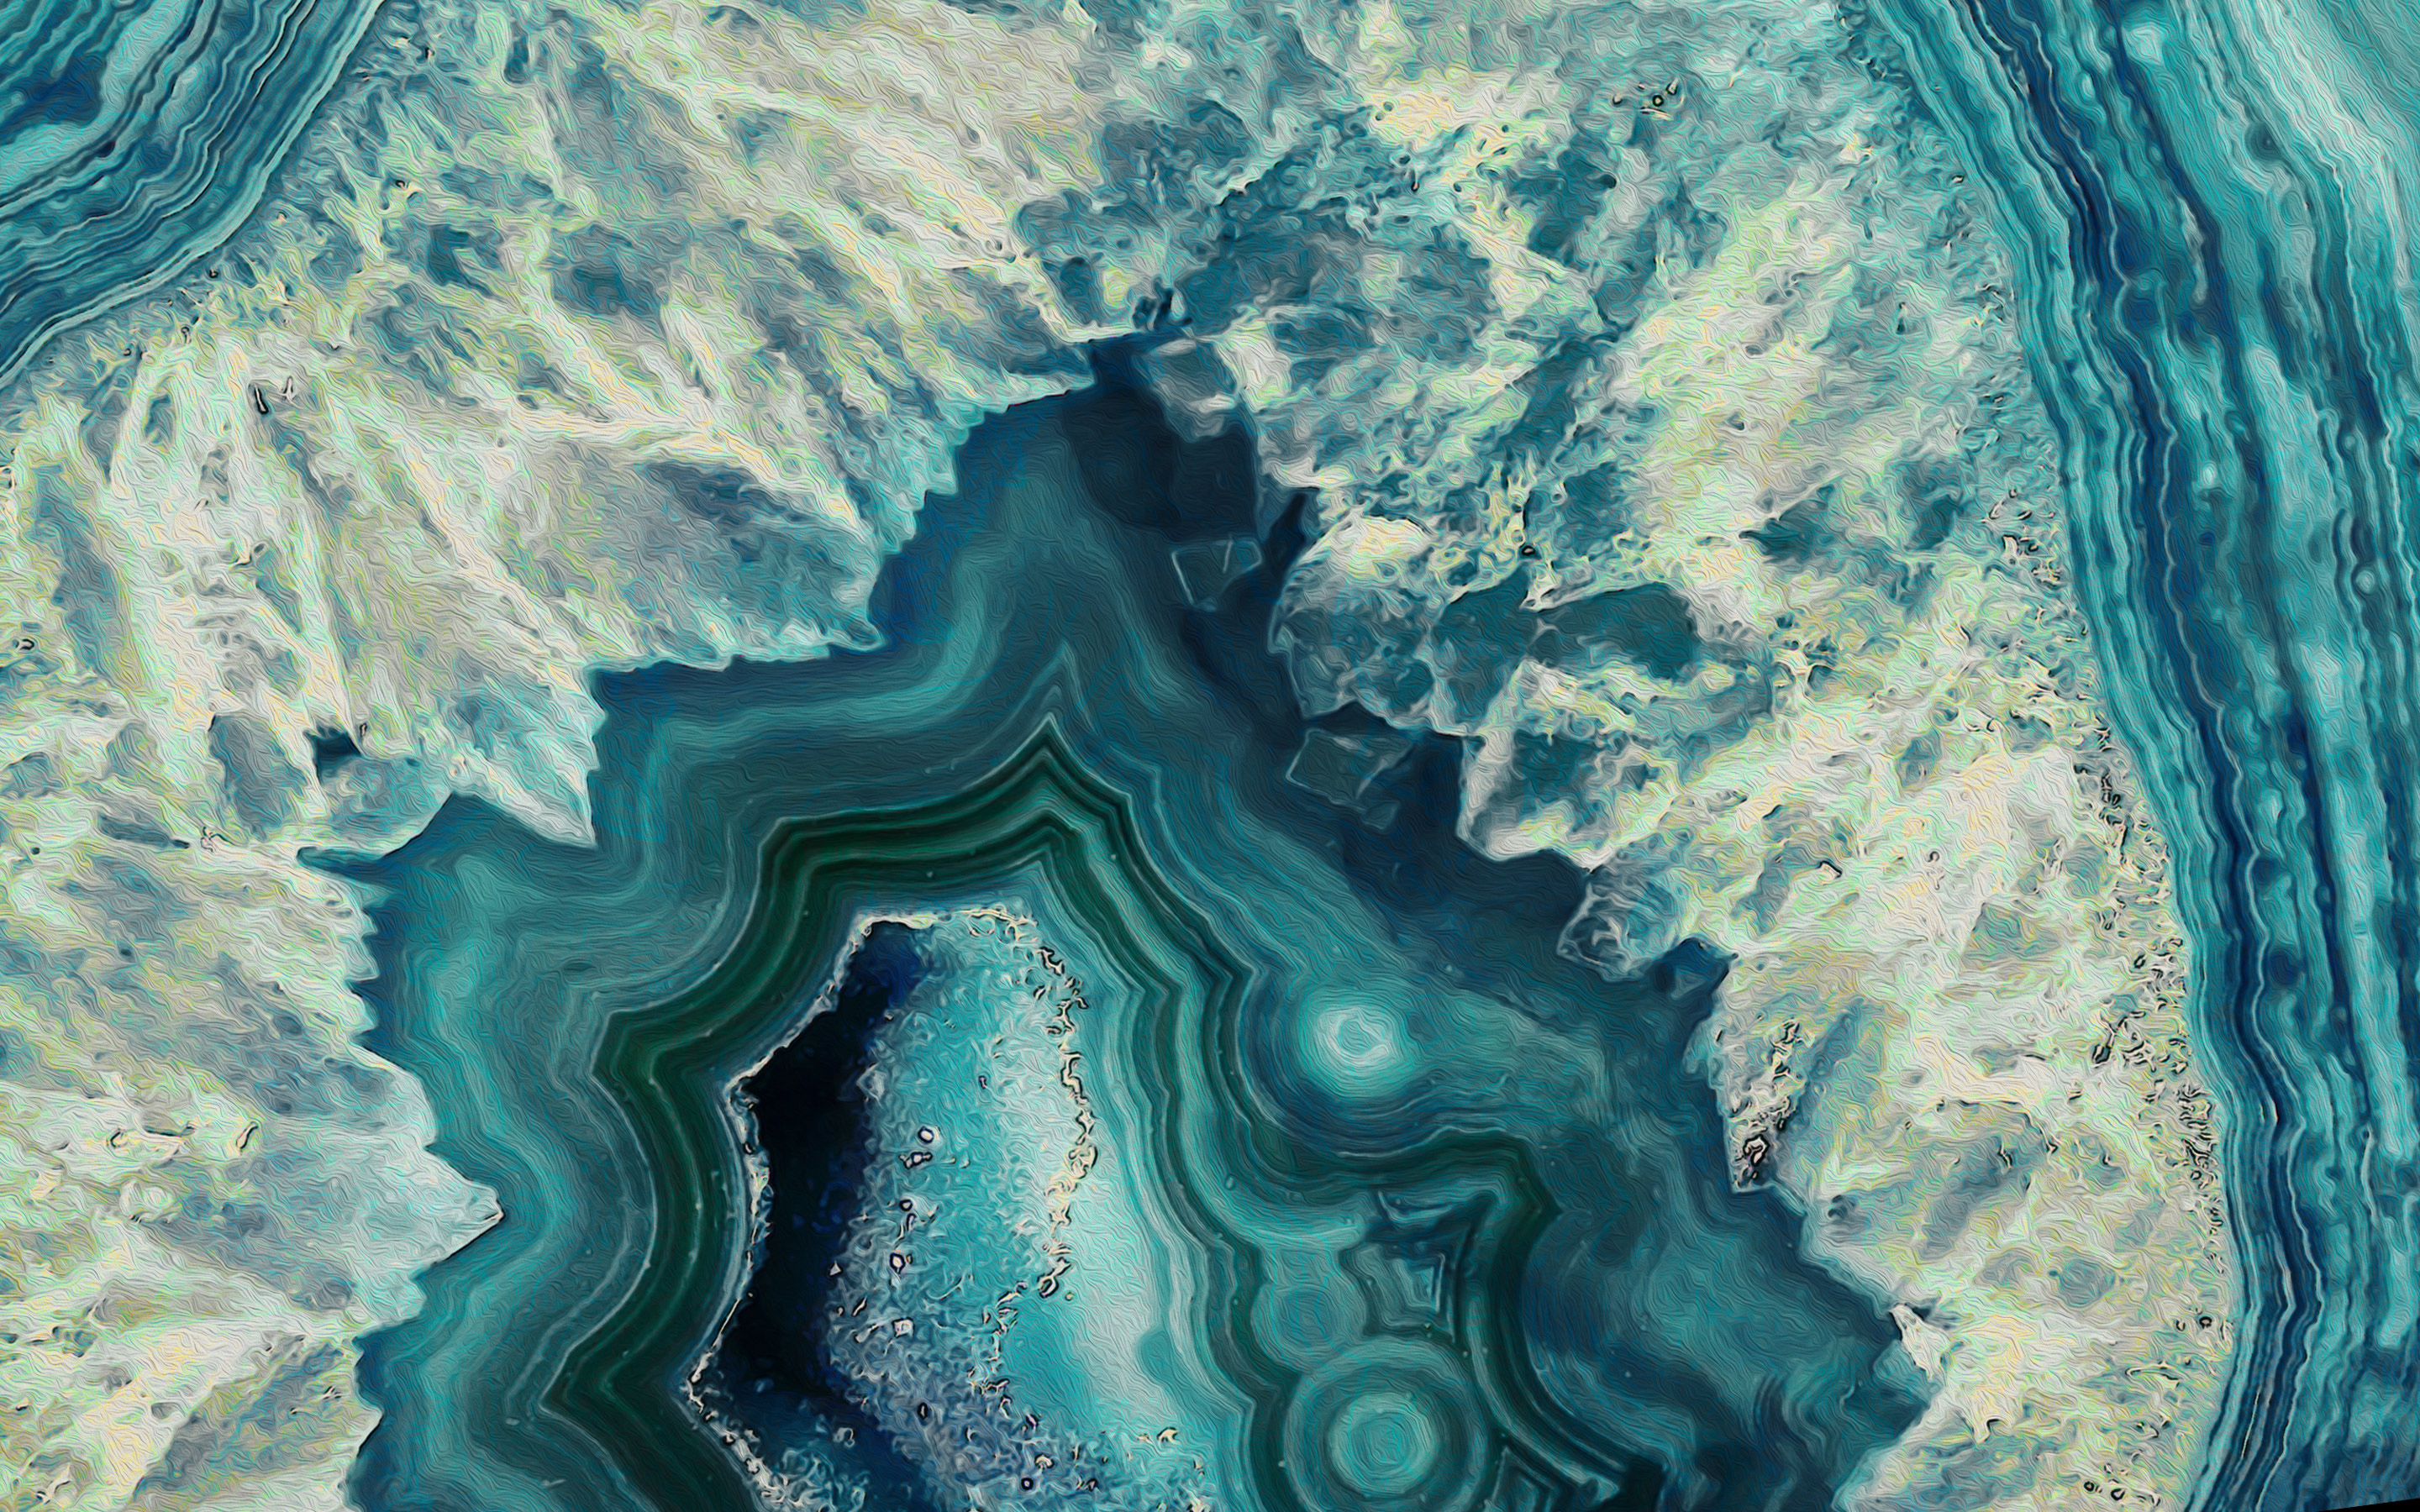 Island Satellite image Wallpapers